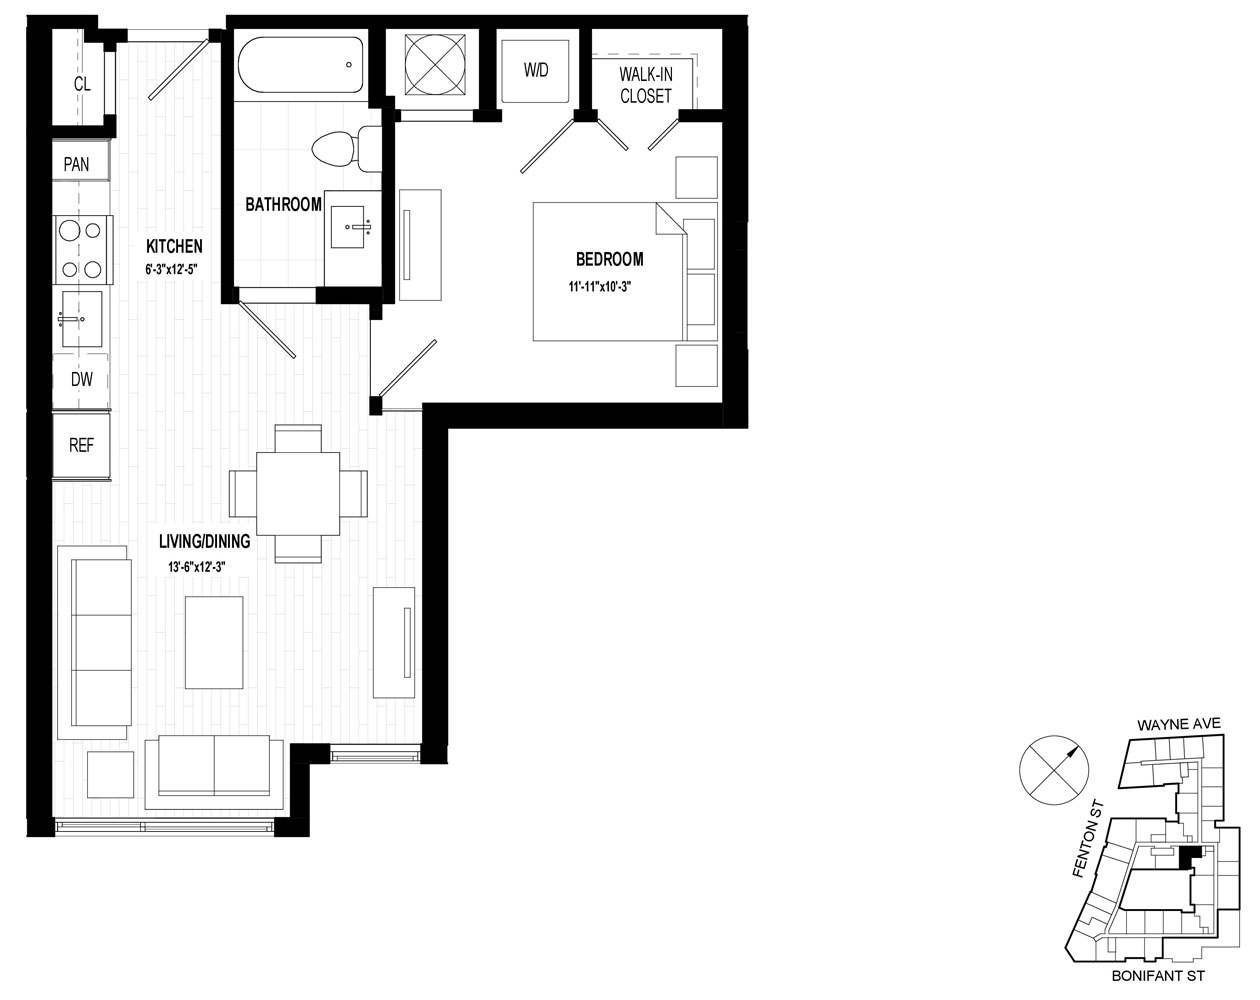 P0578887 761aa01 central a15 564 2 floorplan